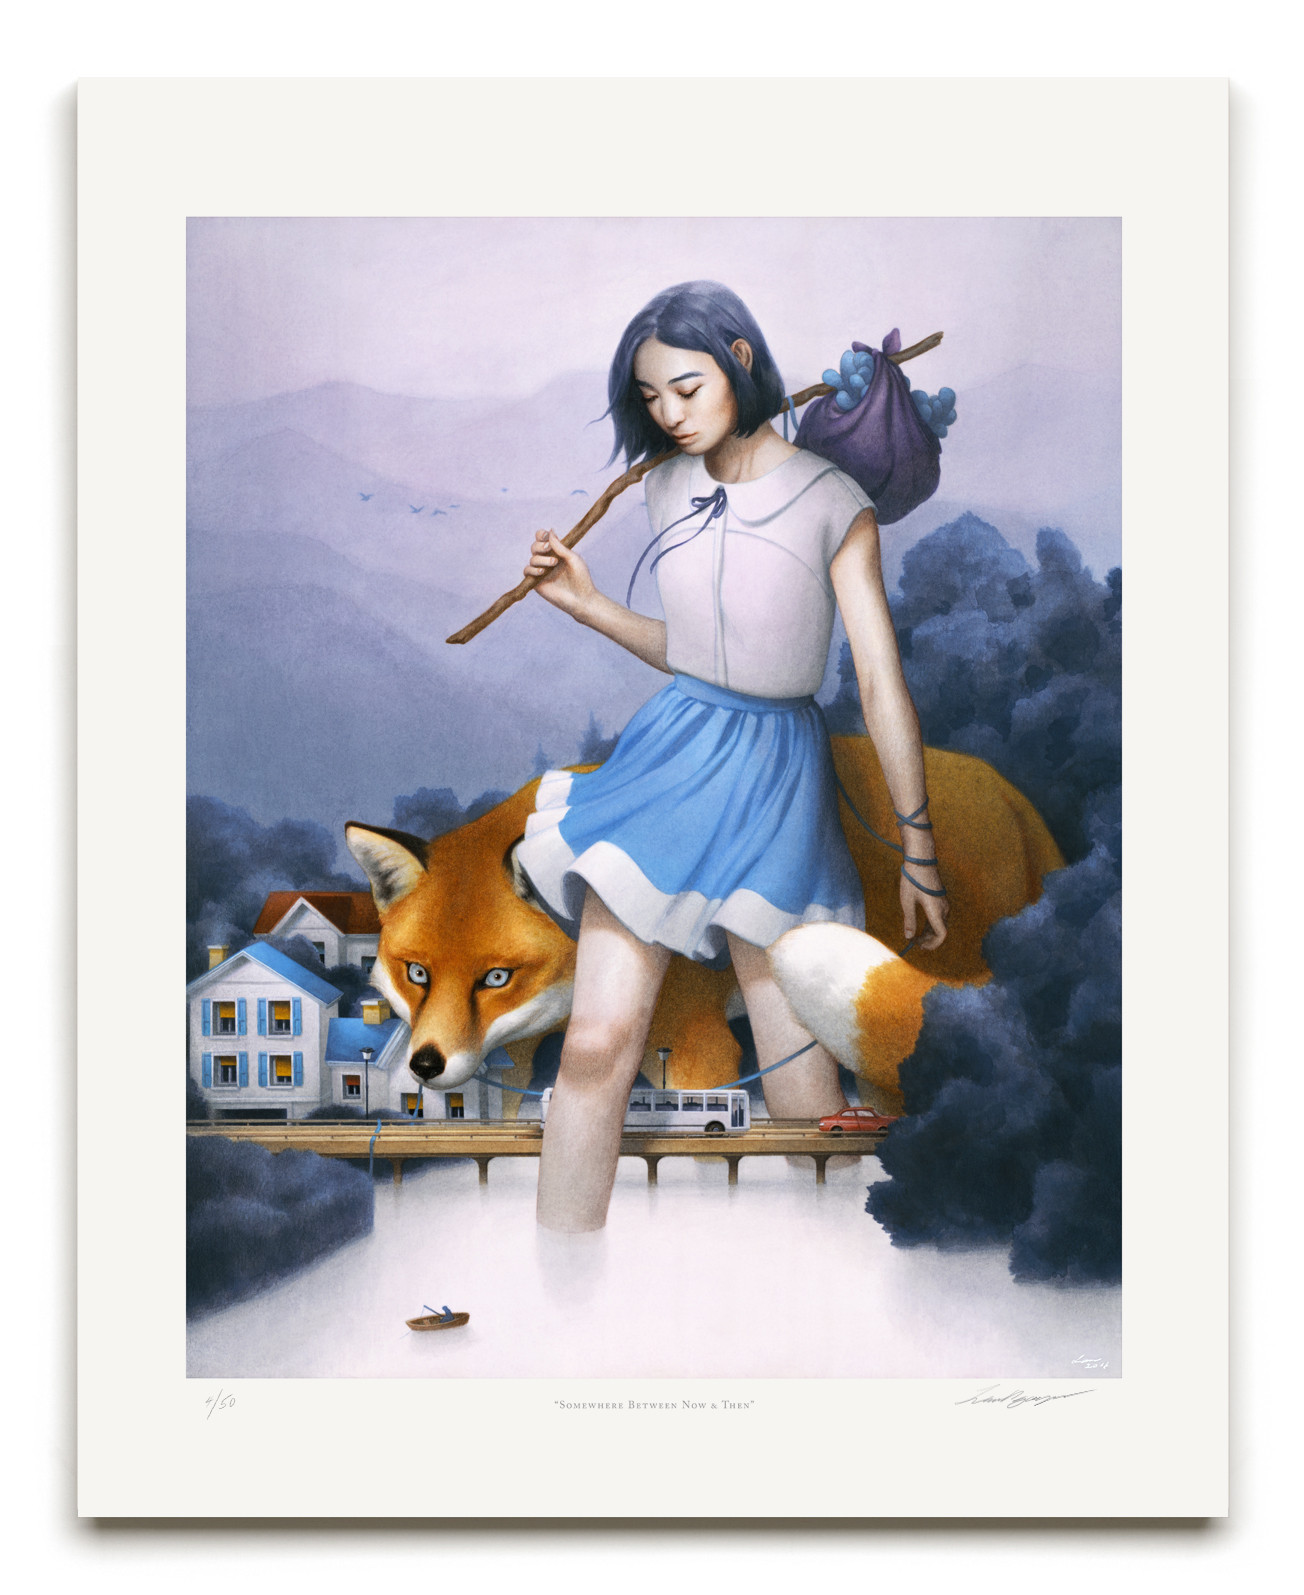 """Somewhere Between Now & Then"" by Tran Nguyen.  16"" x 20"" Giclee.  Ed of 50 S/N.  $100"